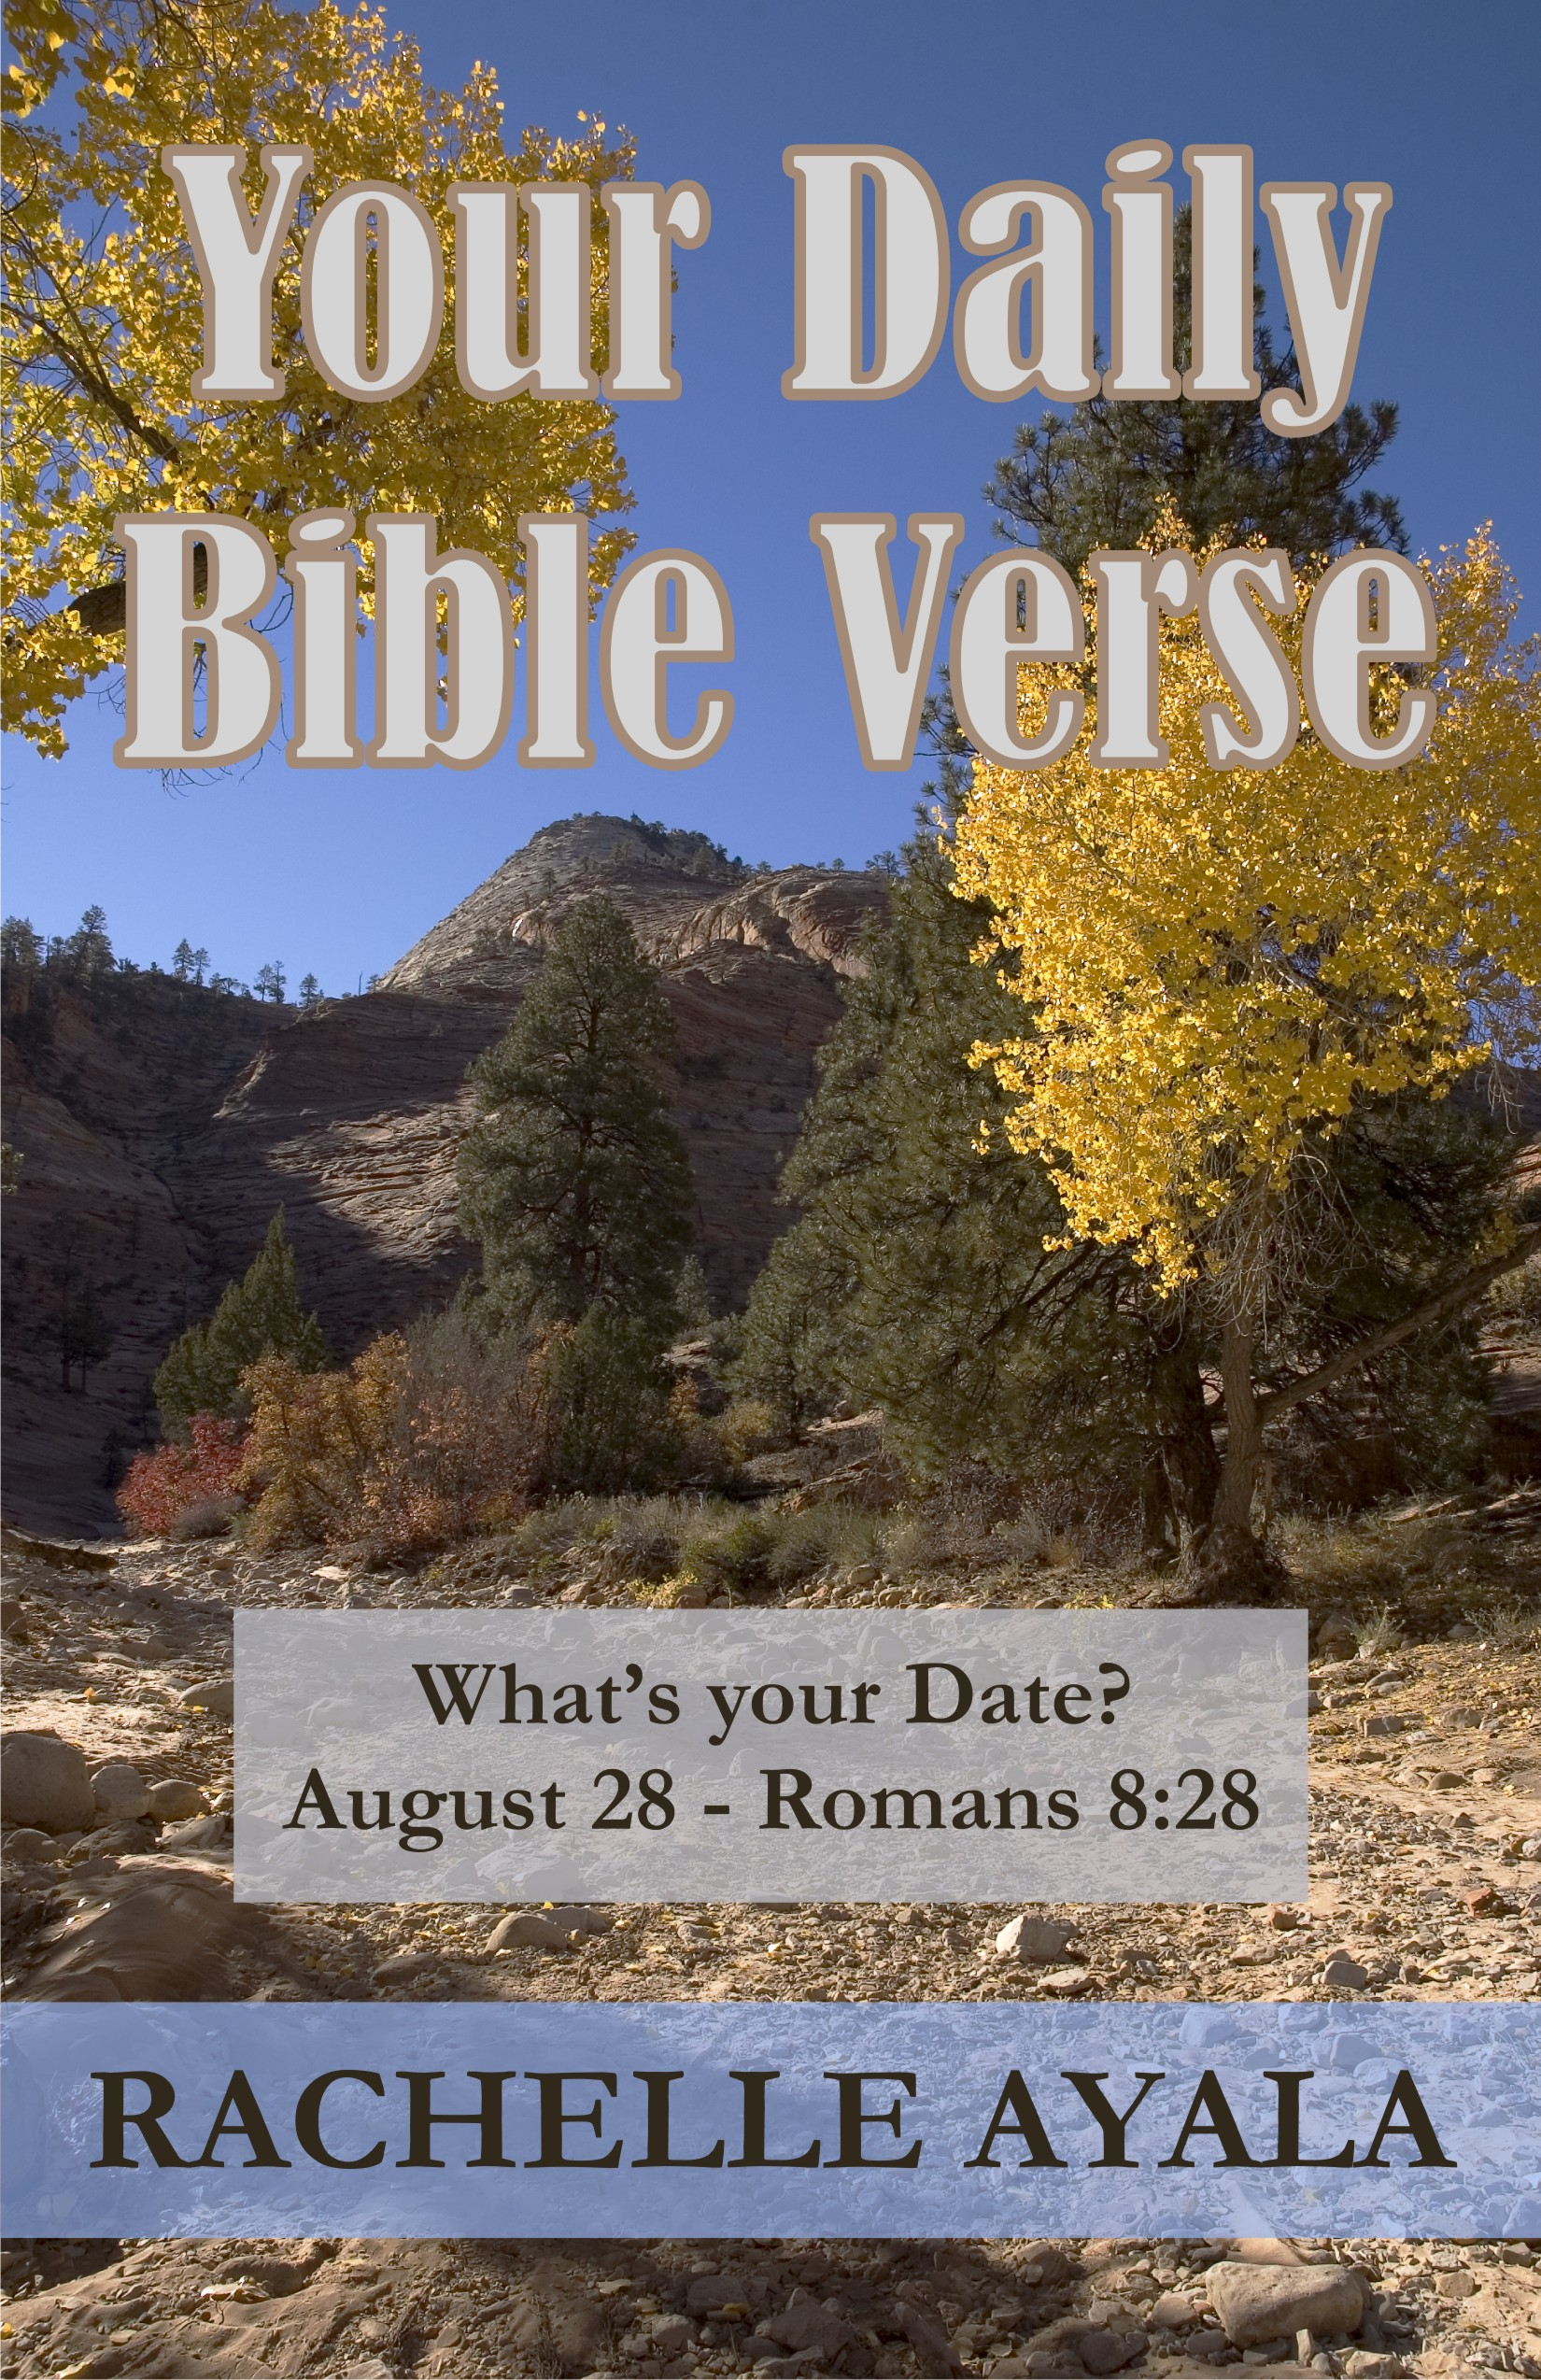 yourdailybibleversecover-347018abc359f55b7b288f7fbb26e9a867fe252b